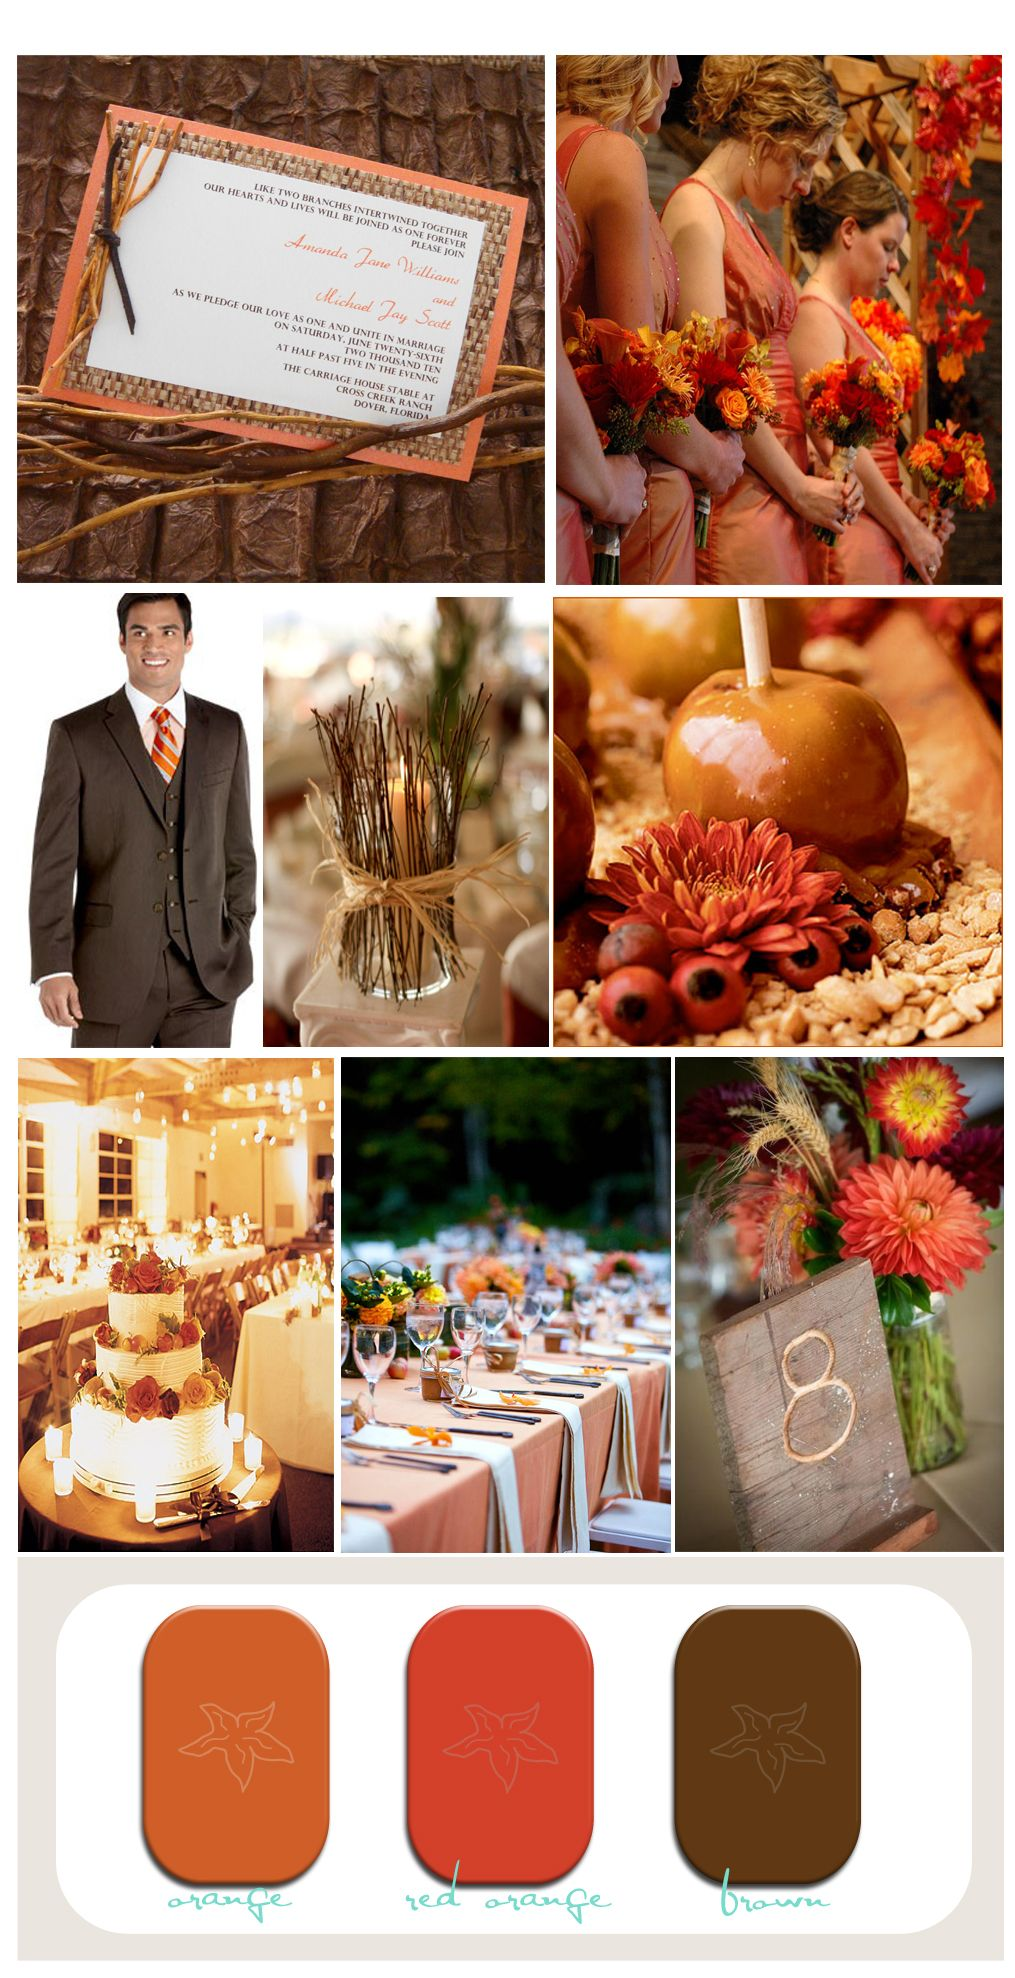 Rusticweddinf Decorations Fall Orange Red And Brown Rustic